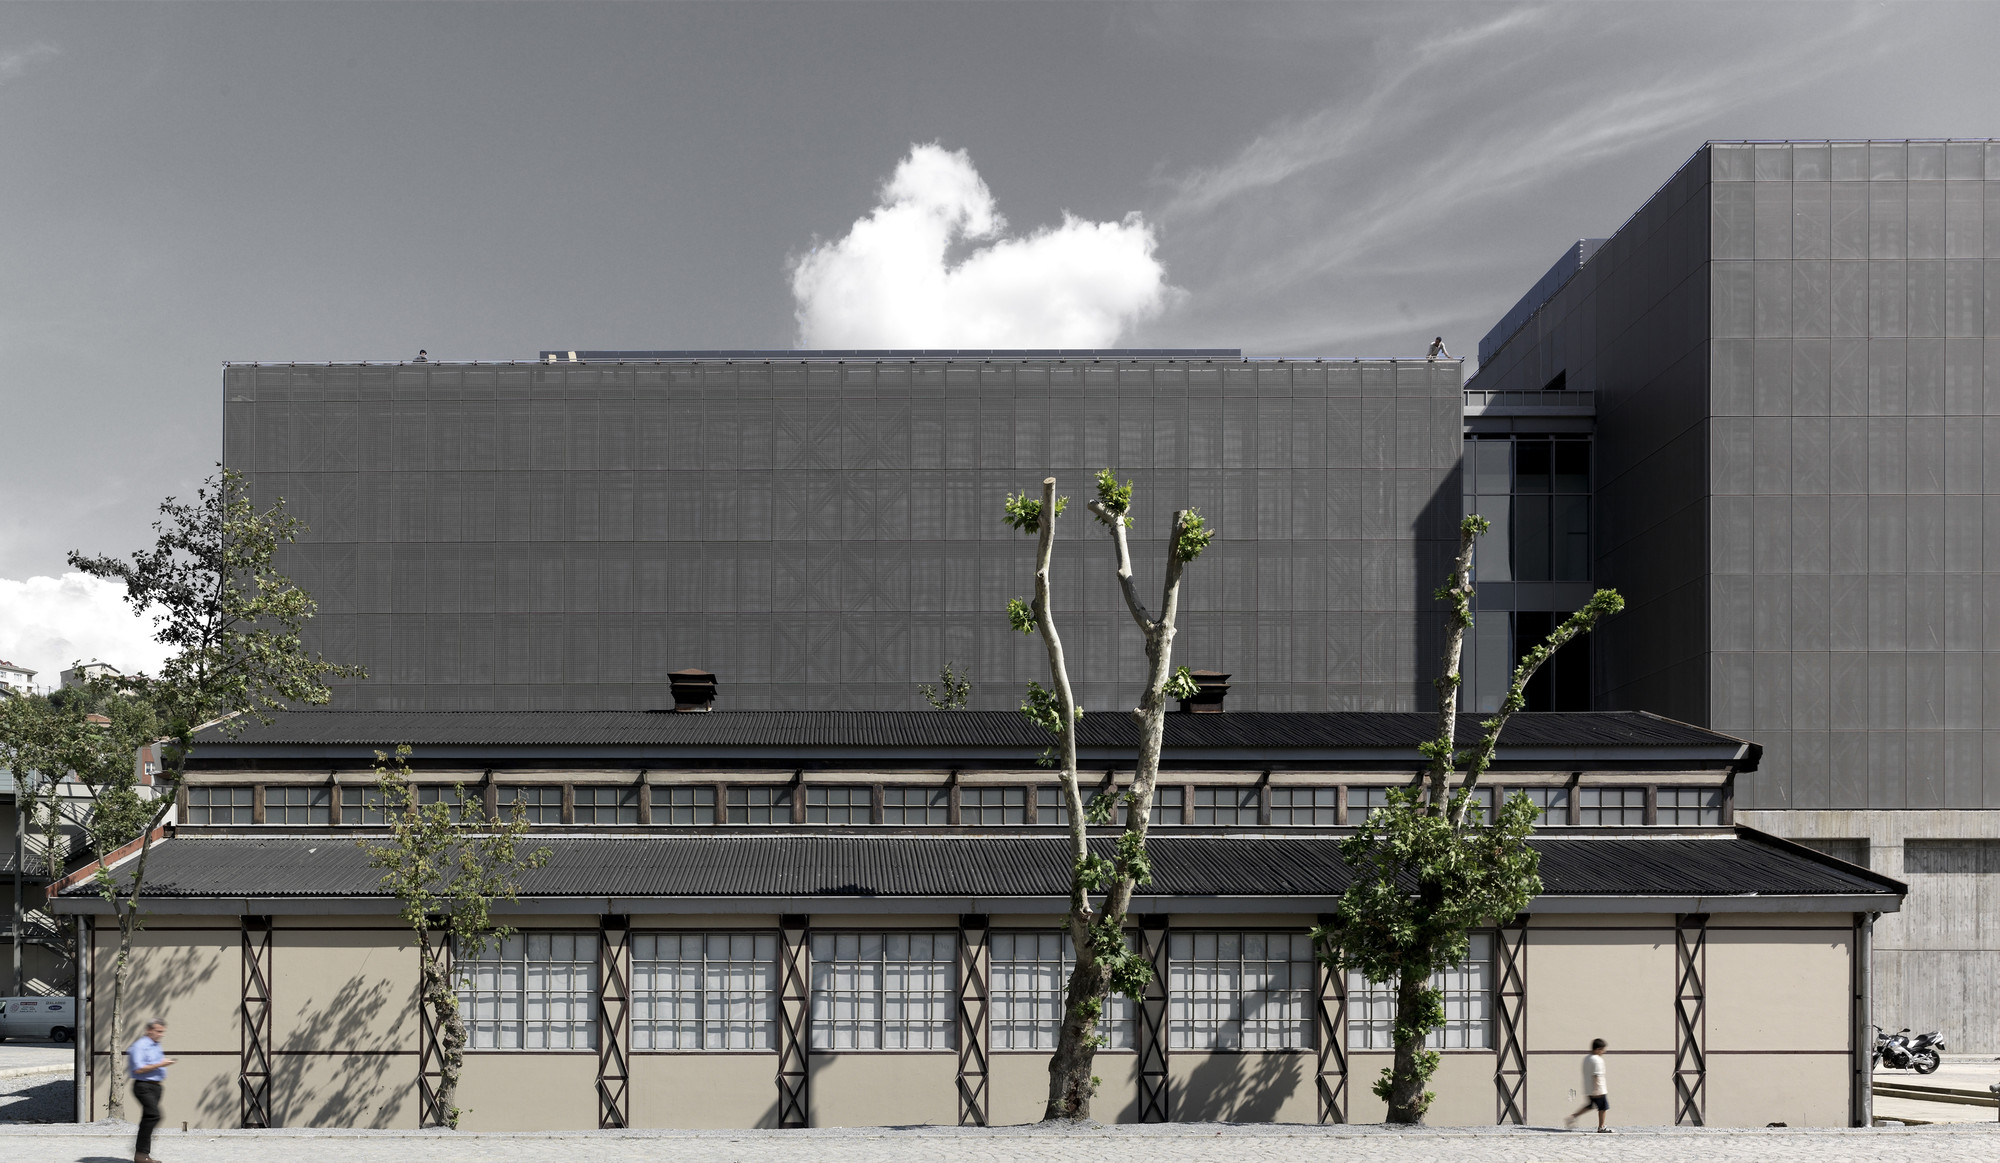 Santral Istanbul Museum of Contemporary Arts / Emre Arolat Architects + NSMH, © Emre Arolat Architects